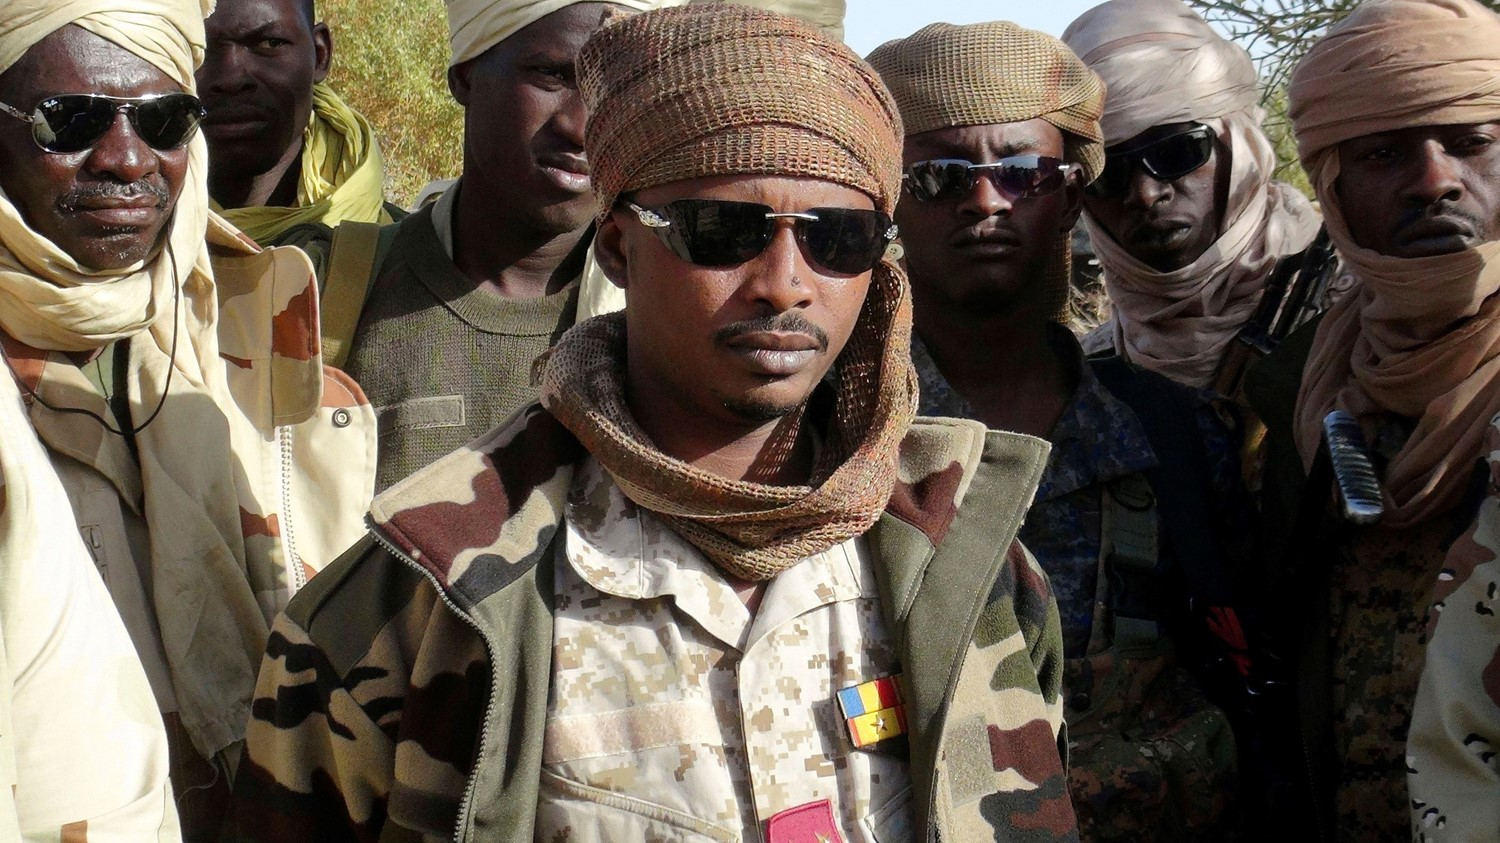 The future of the regime and the armed opposition in Chad